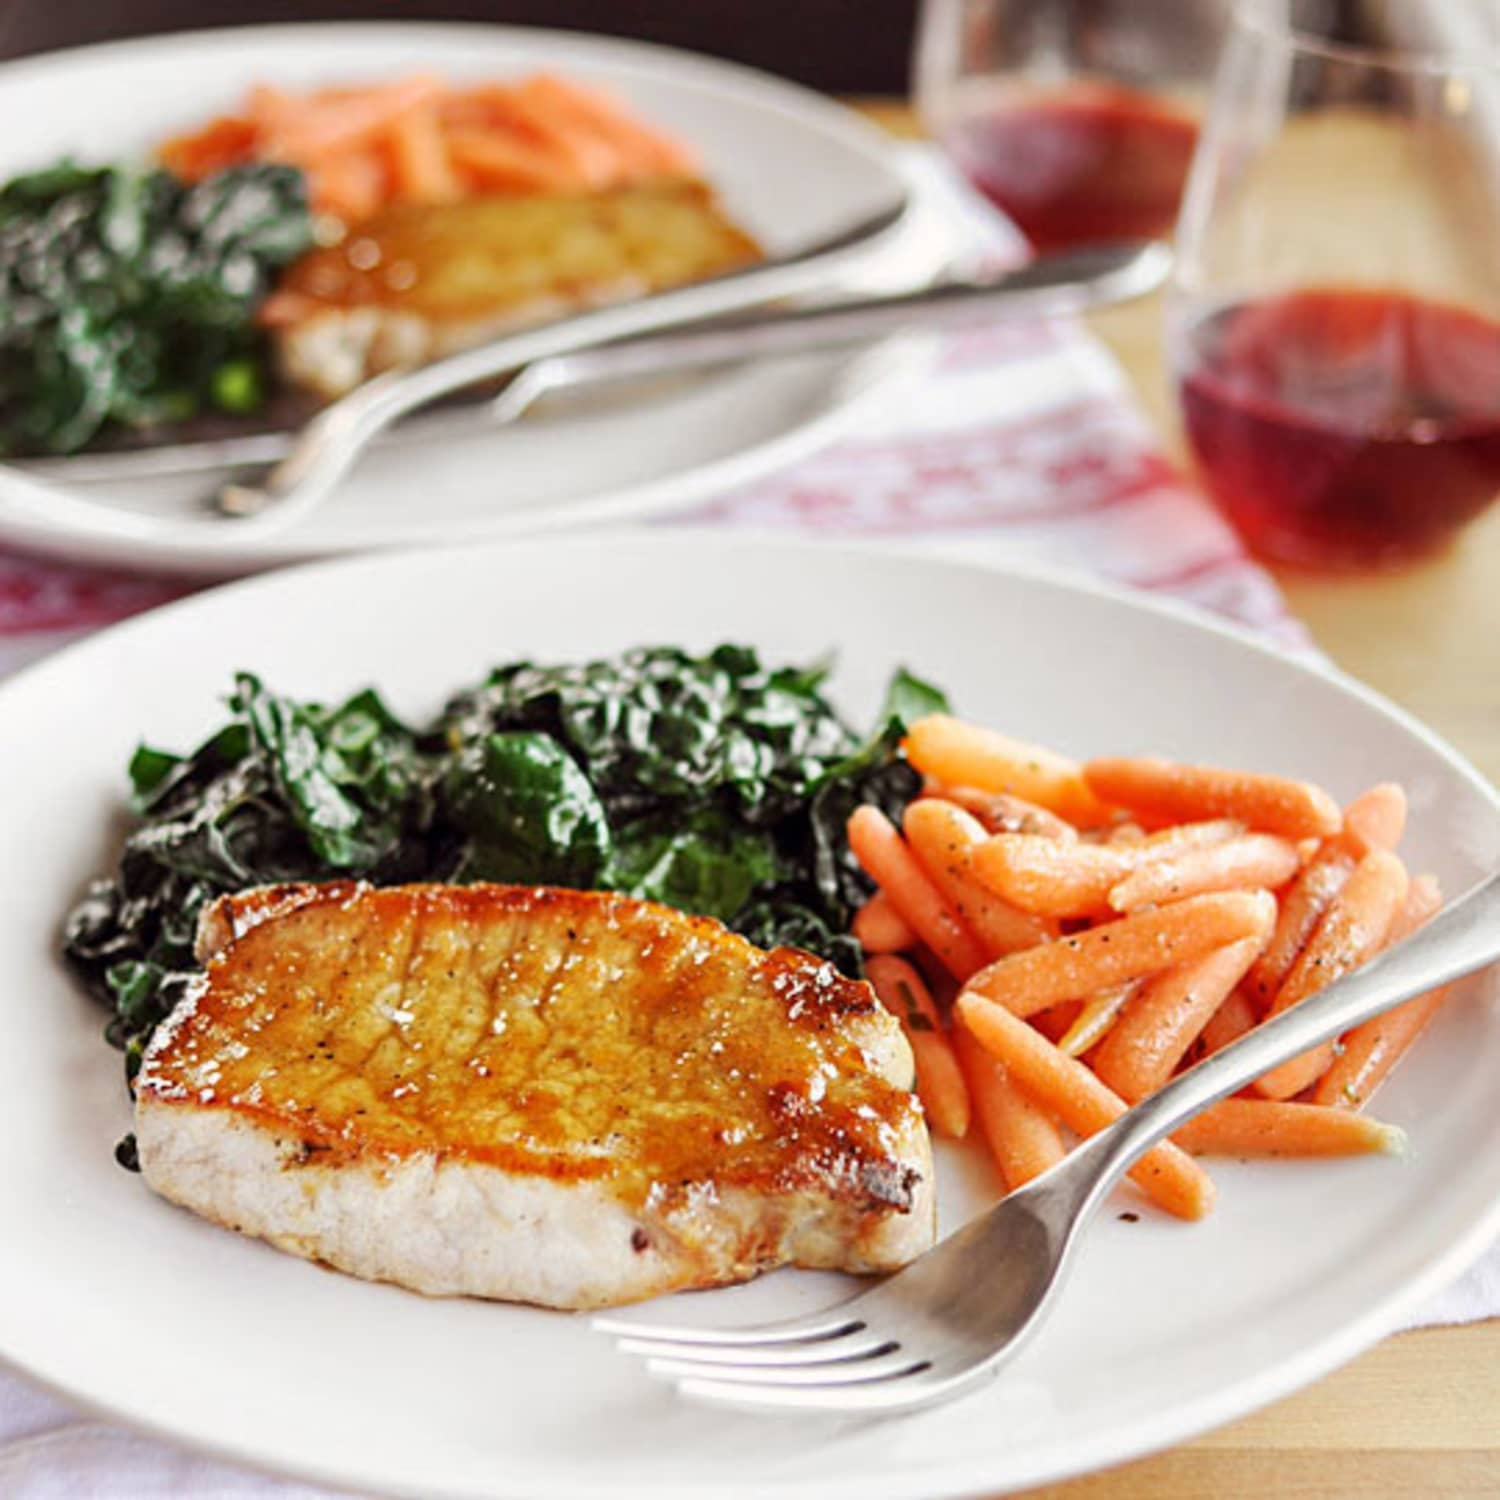 Dinner-for-Two Recipe: Sage-Brined Pork Chops with Brown Sugar Glaze